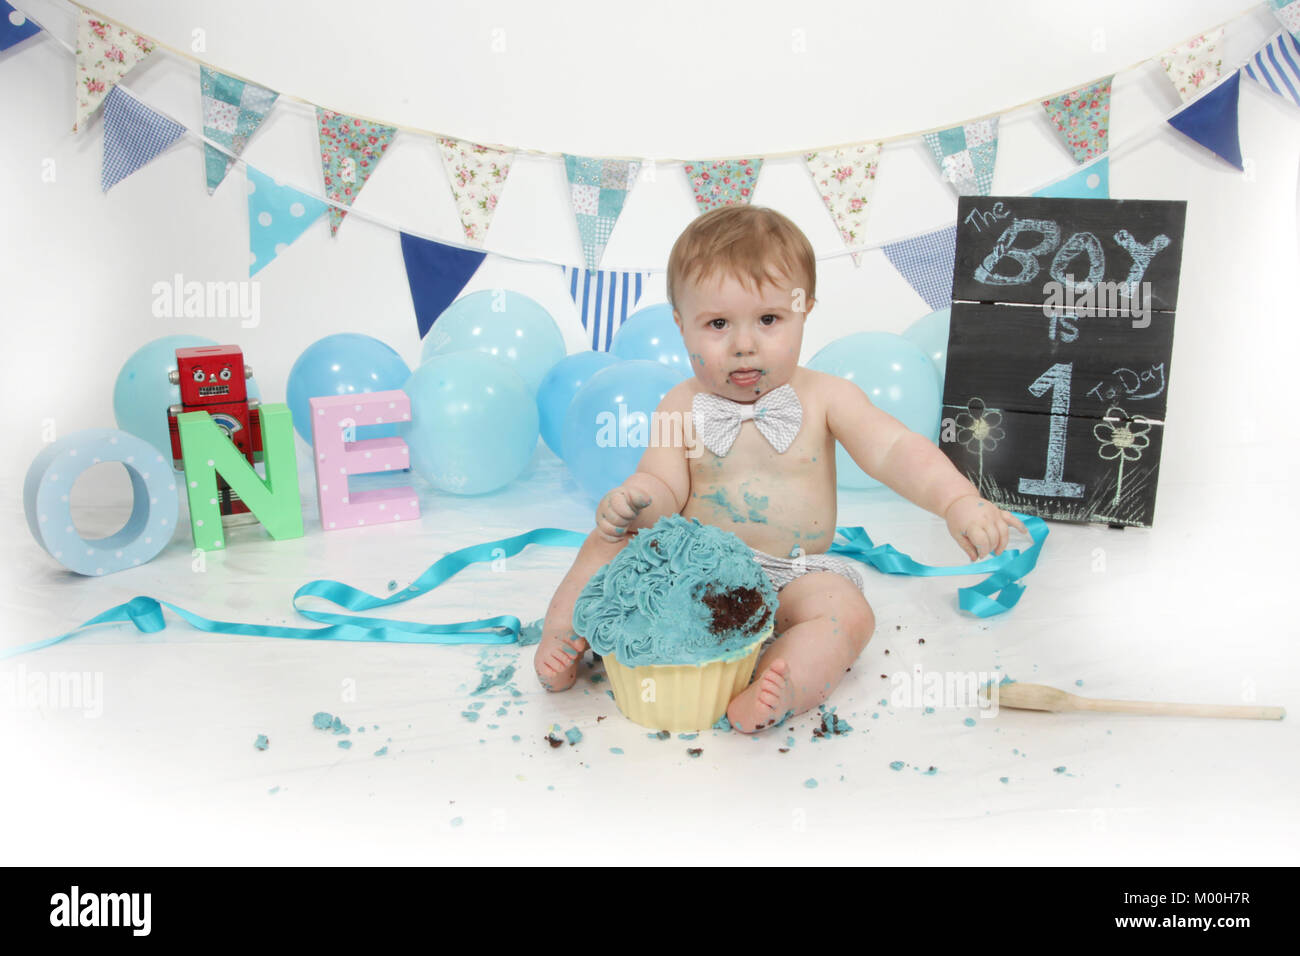 1 Year Old Boy Birthday Party Cake Smash Fun Food Stock Photo